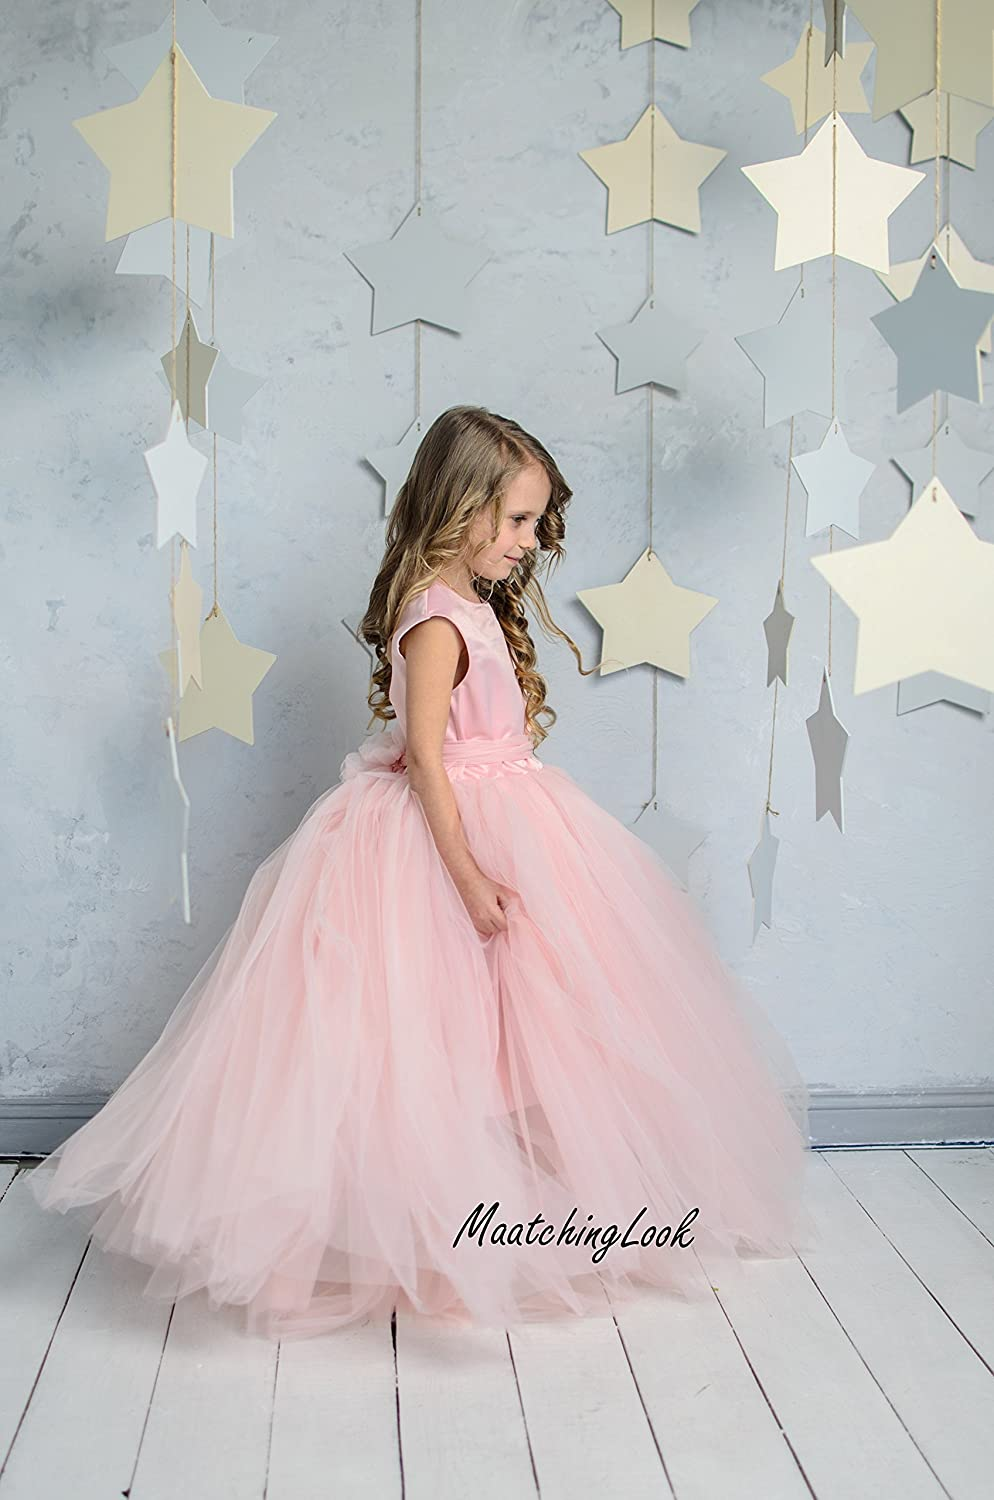 caaa597b1 Amazon.com: Flower Girl Dress Blush Pink,Princess Dress,Blush Baby Girl  Tutu Dress,1st Birthday Girl Outfit Tulle Dress Toddler Dress Pink Wedding  Dress: ...